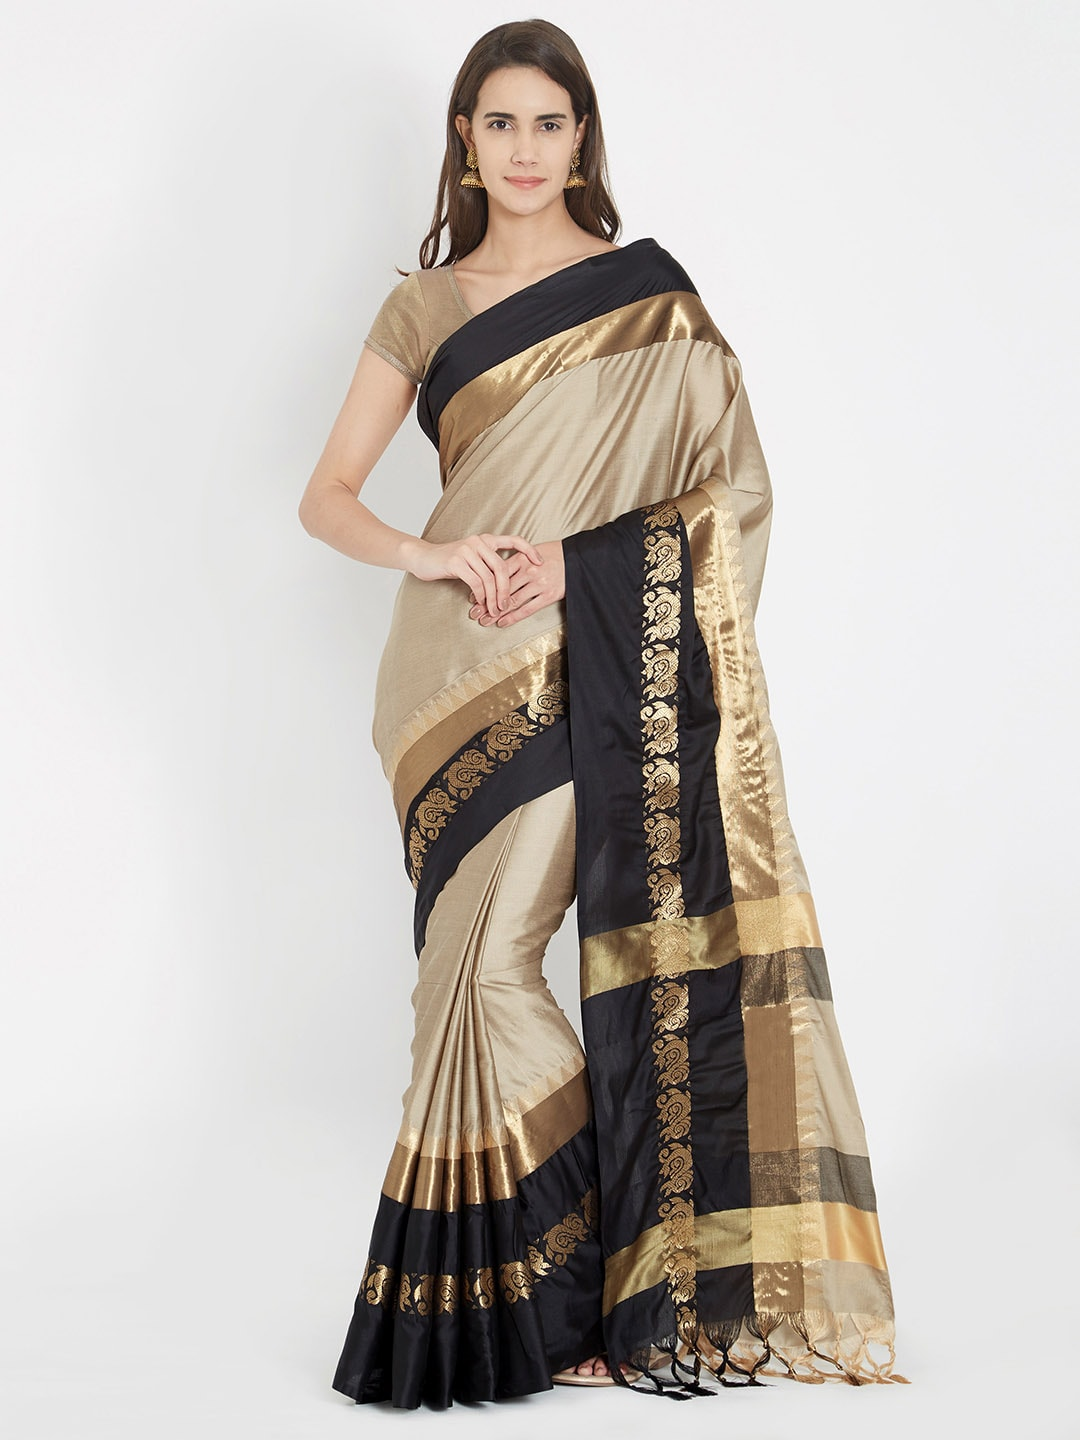 d5affbe91b1 Saree - Buy Sarees Online at Best Price in India